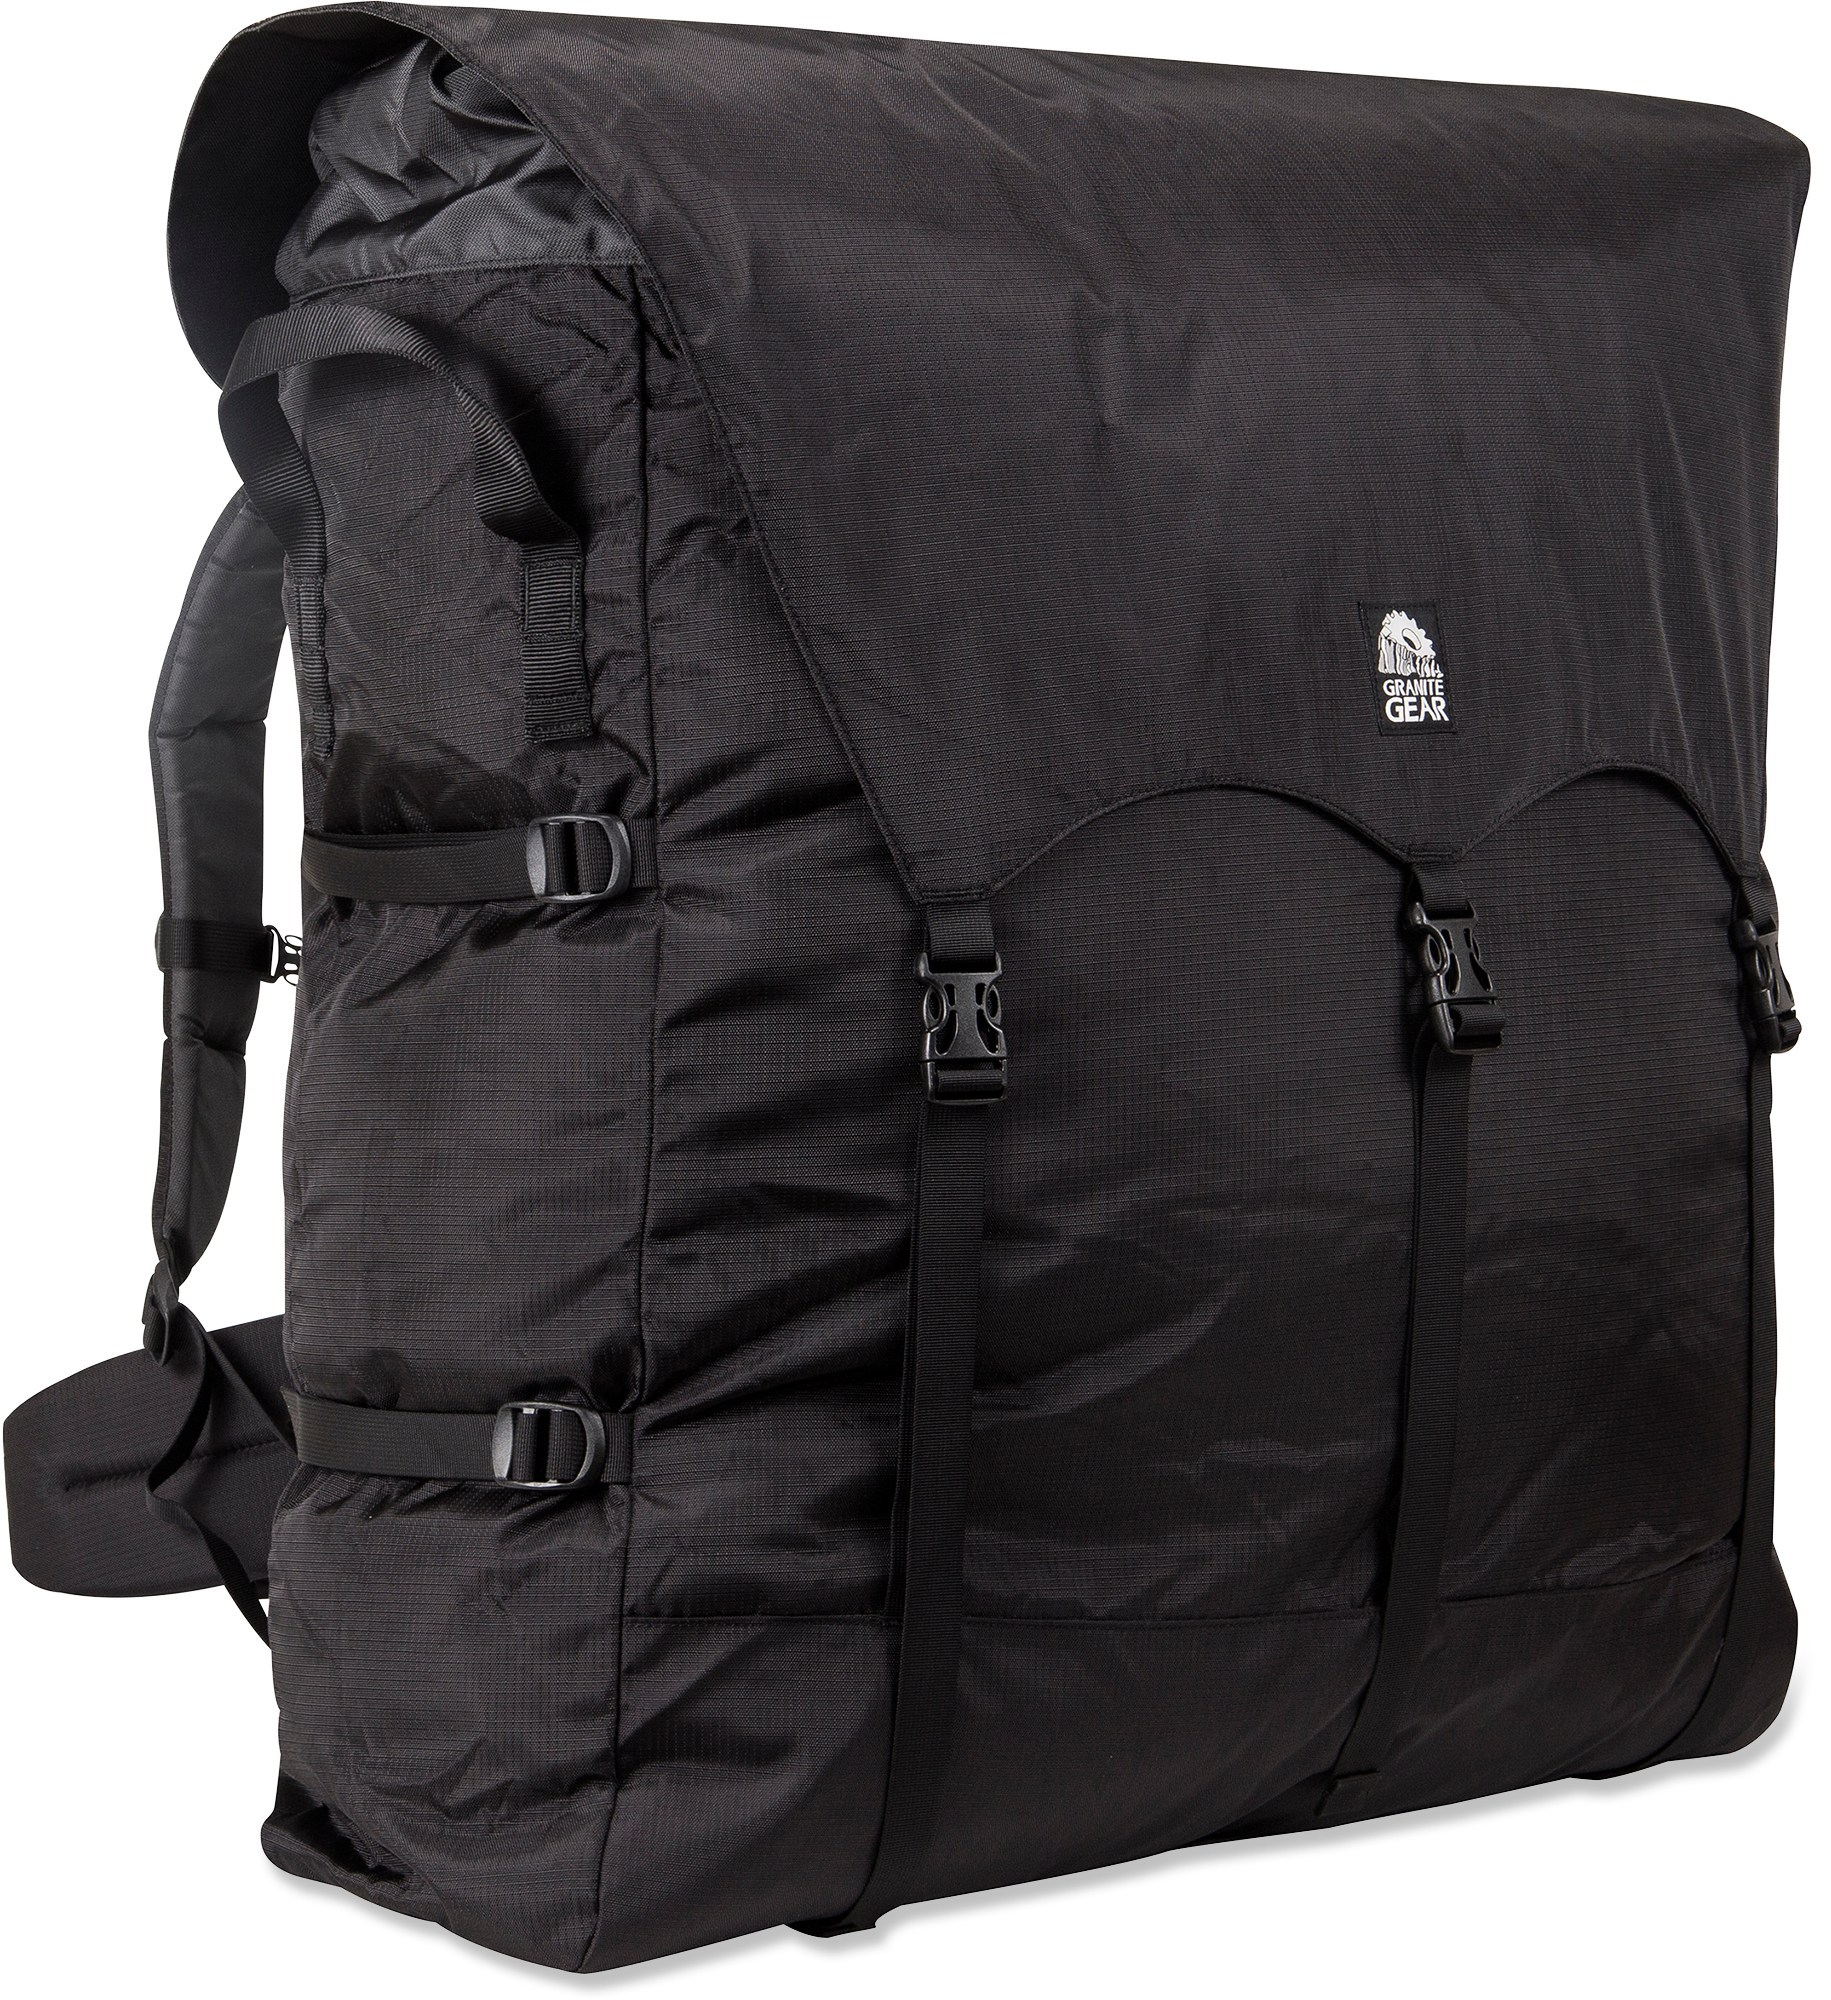 Granite Gear Trad #4 Canoe Pack